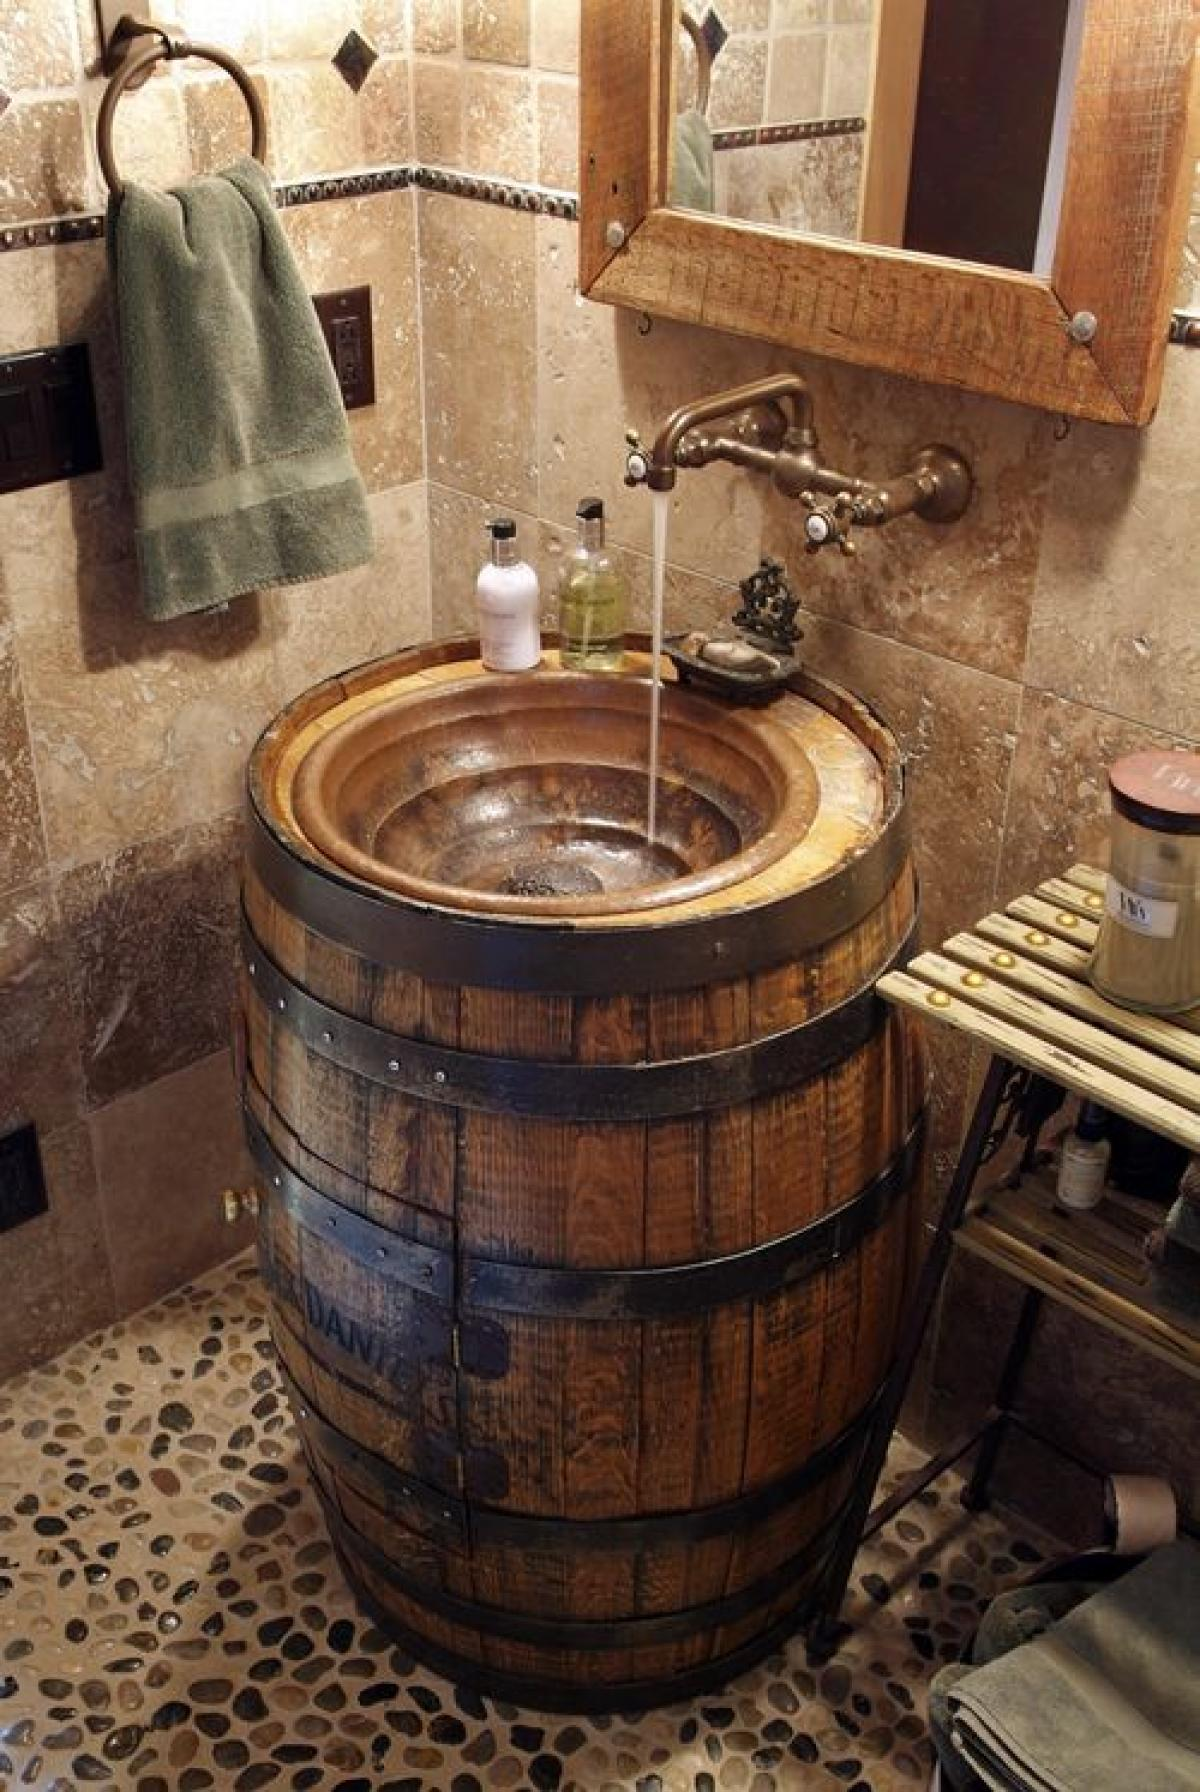 Attirant 12. Converted Whiskey Barrel Sink